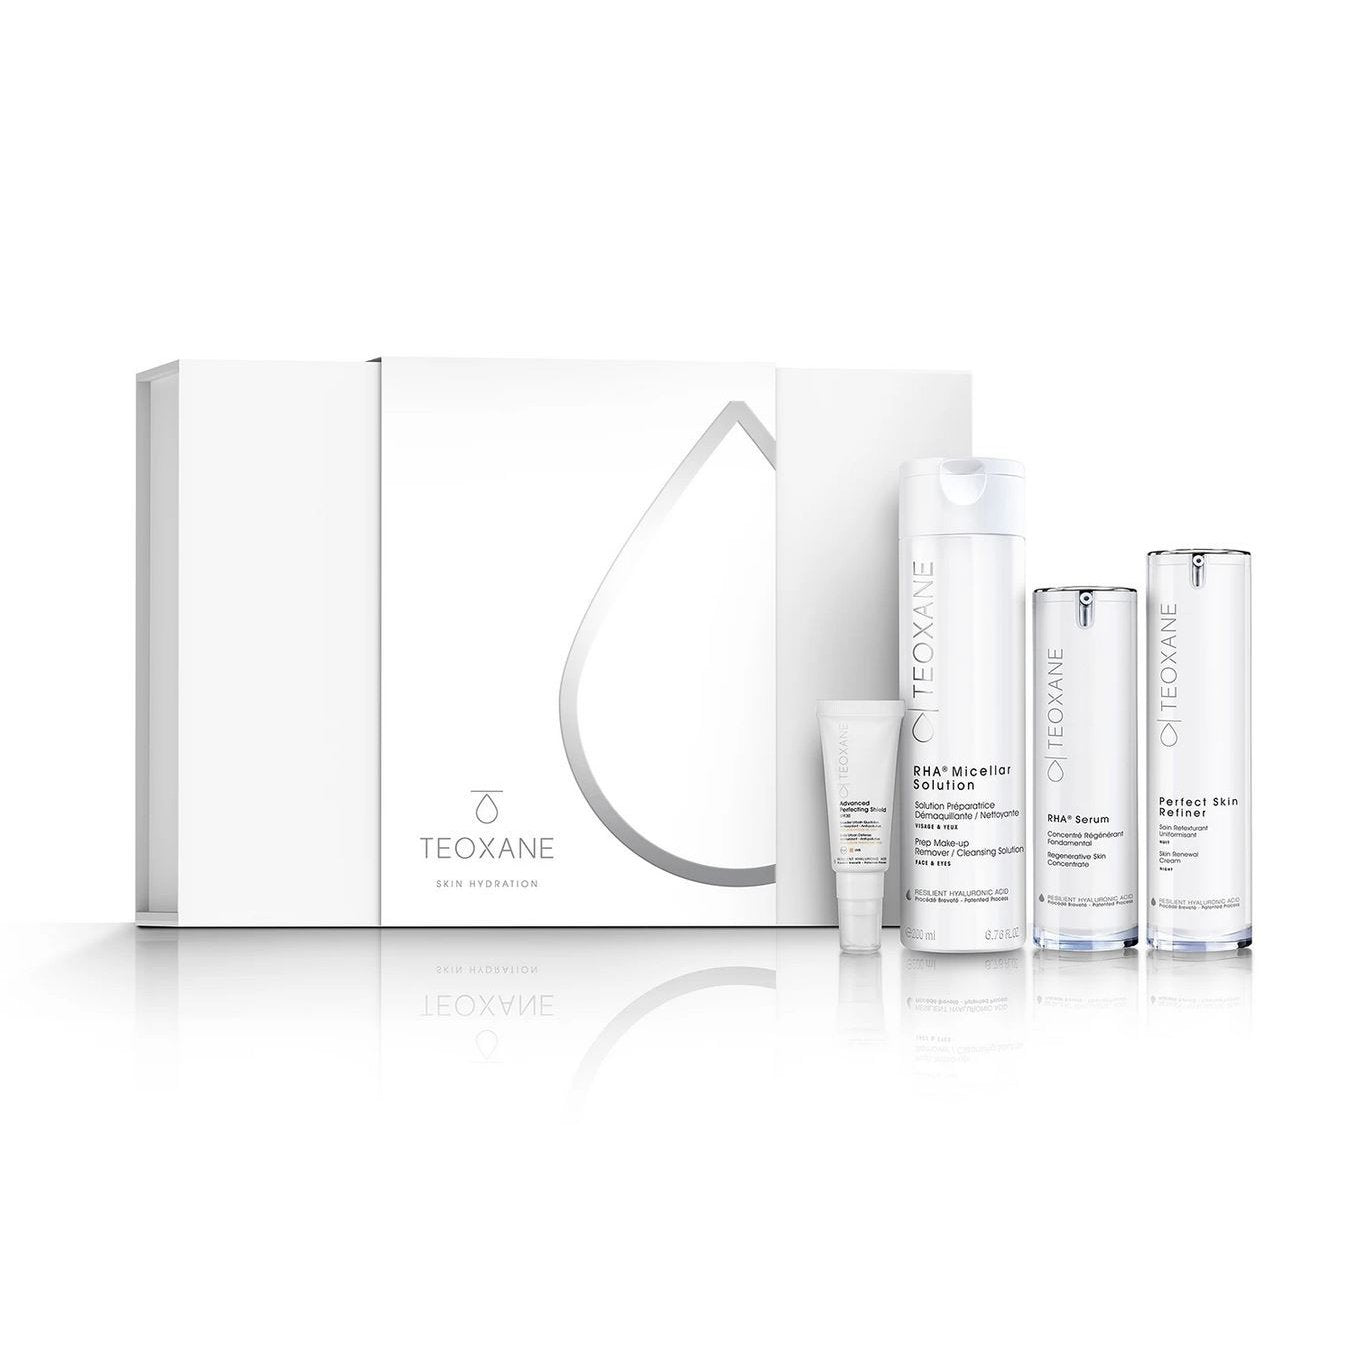 Teoxane Skin Hydration Gift Collection-The Facial Rejuvenation Clinic